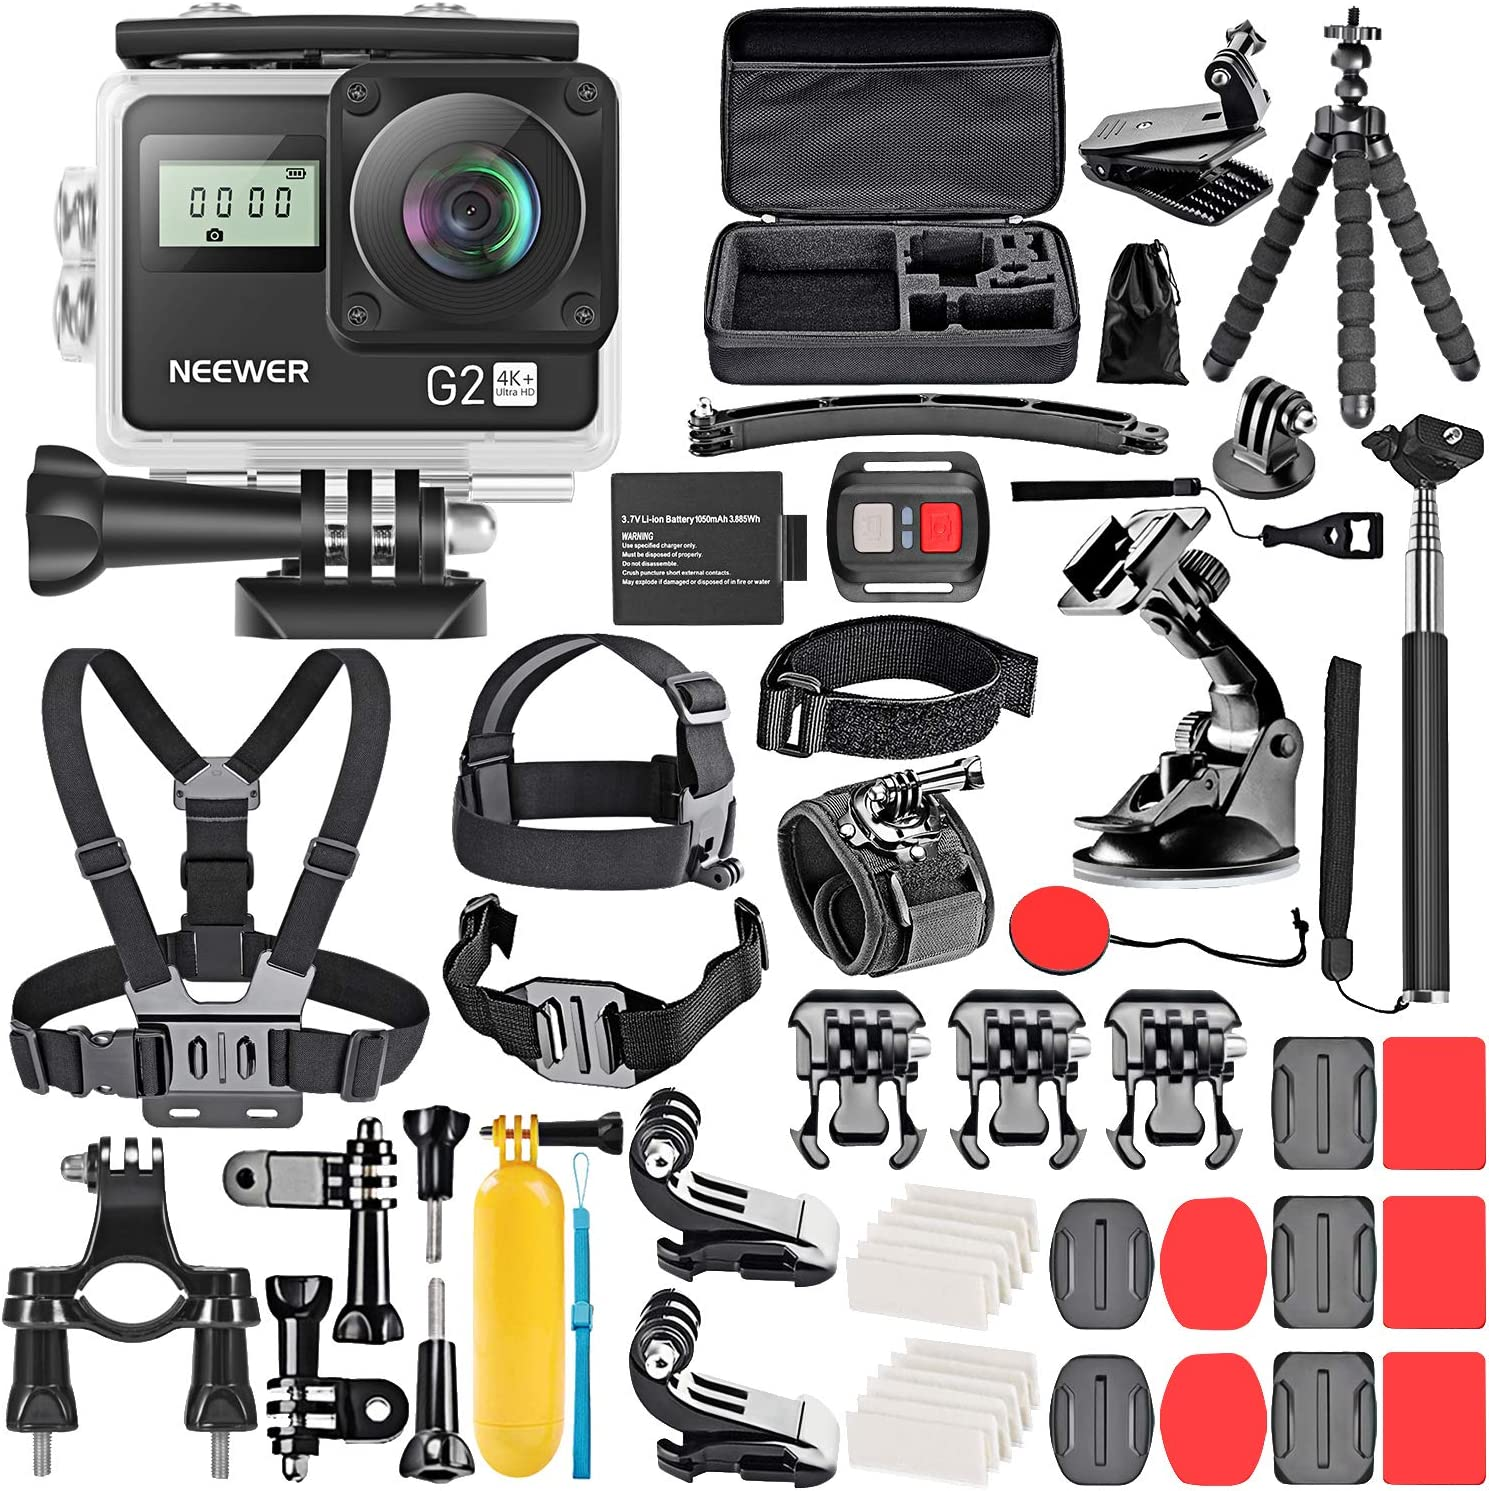 Neewer Sale Special Price G2 4K WiFi Sports Action Touch Ultra with Screen Camera Recommendation H